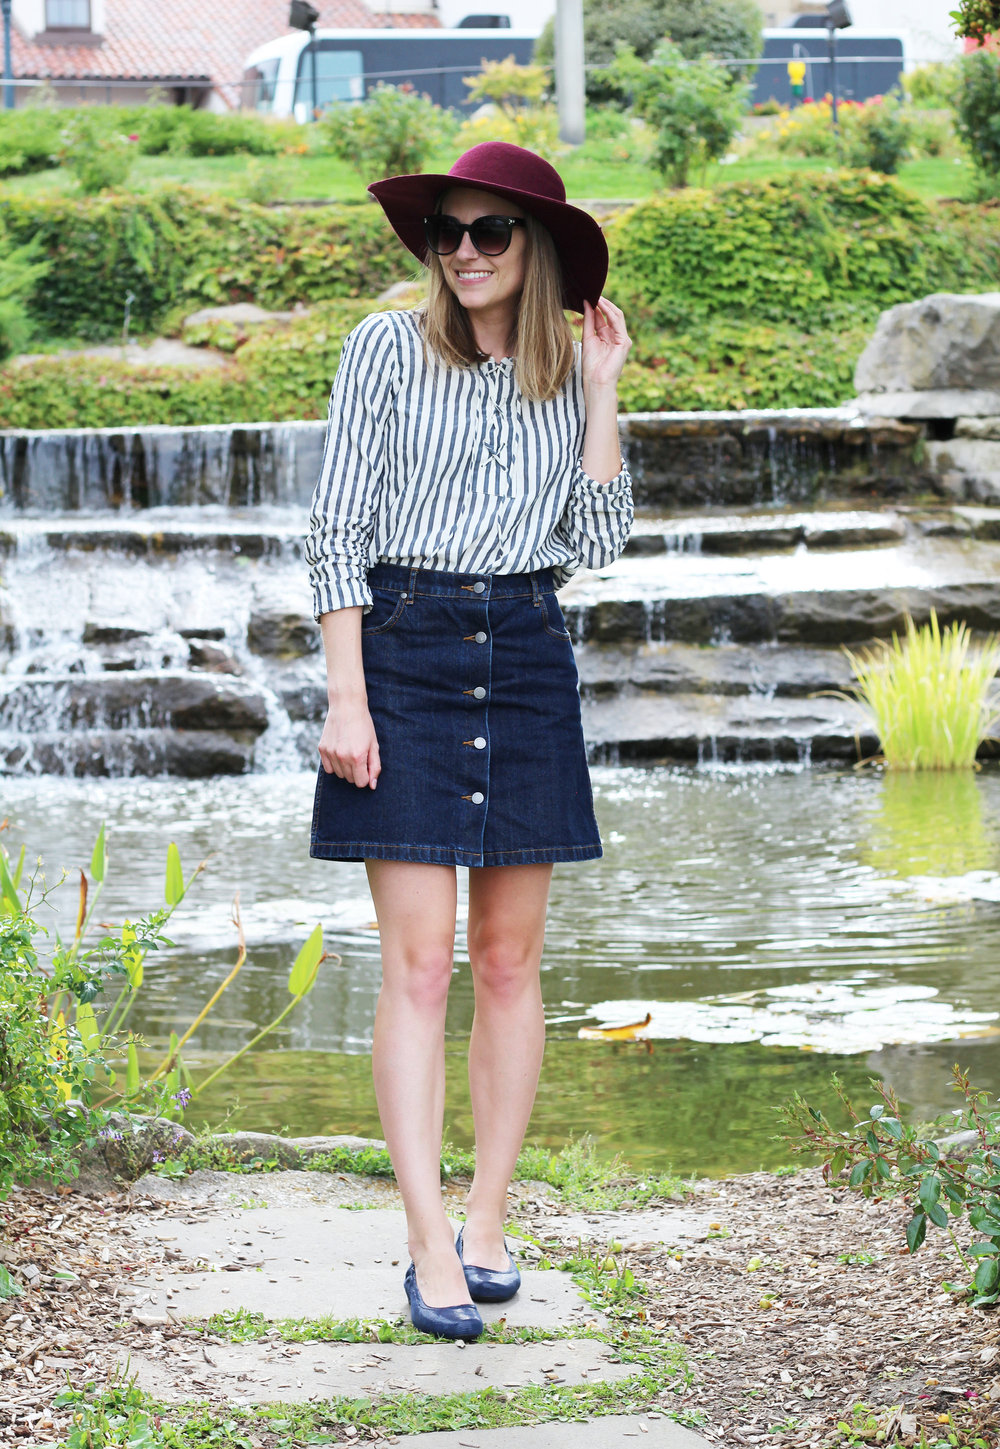 Denim skirt outfit with striped top, floppy felt hat, and Earthies 'Tolo' flats — Cotton Cashmere Cat Hair